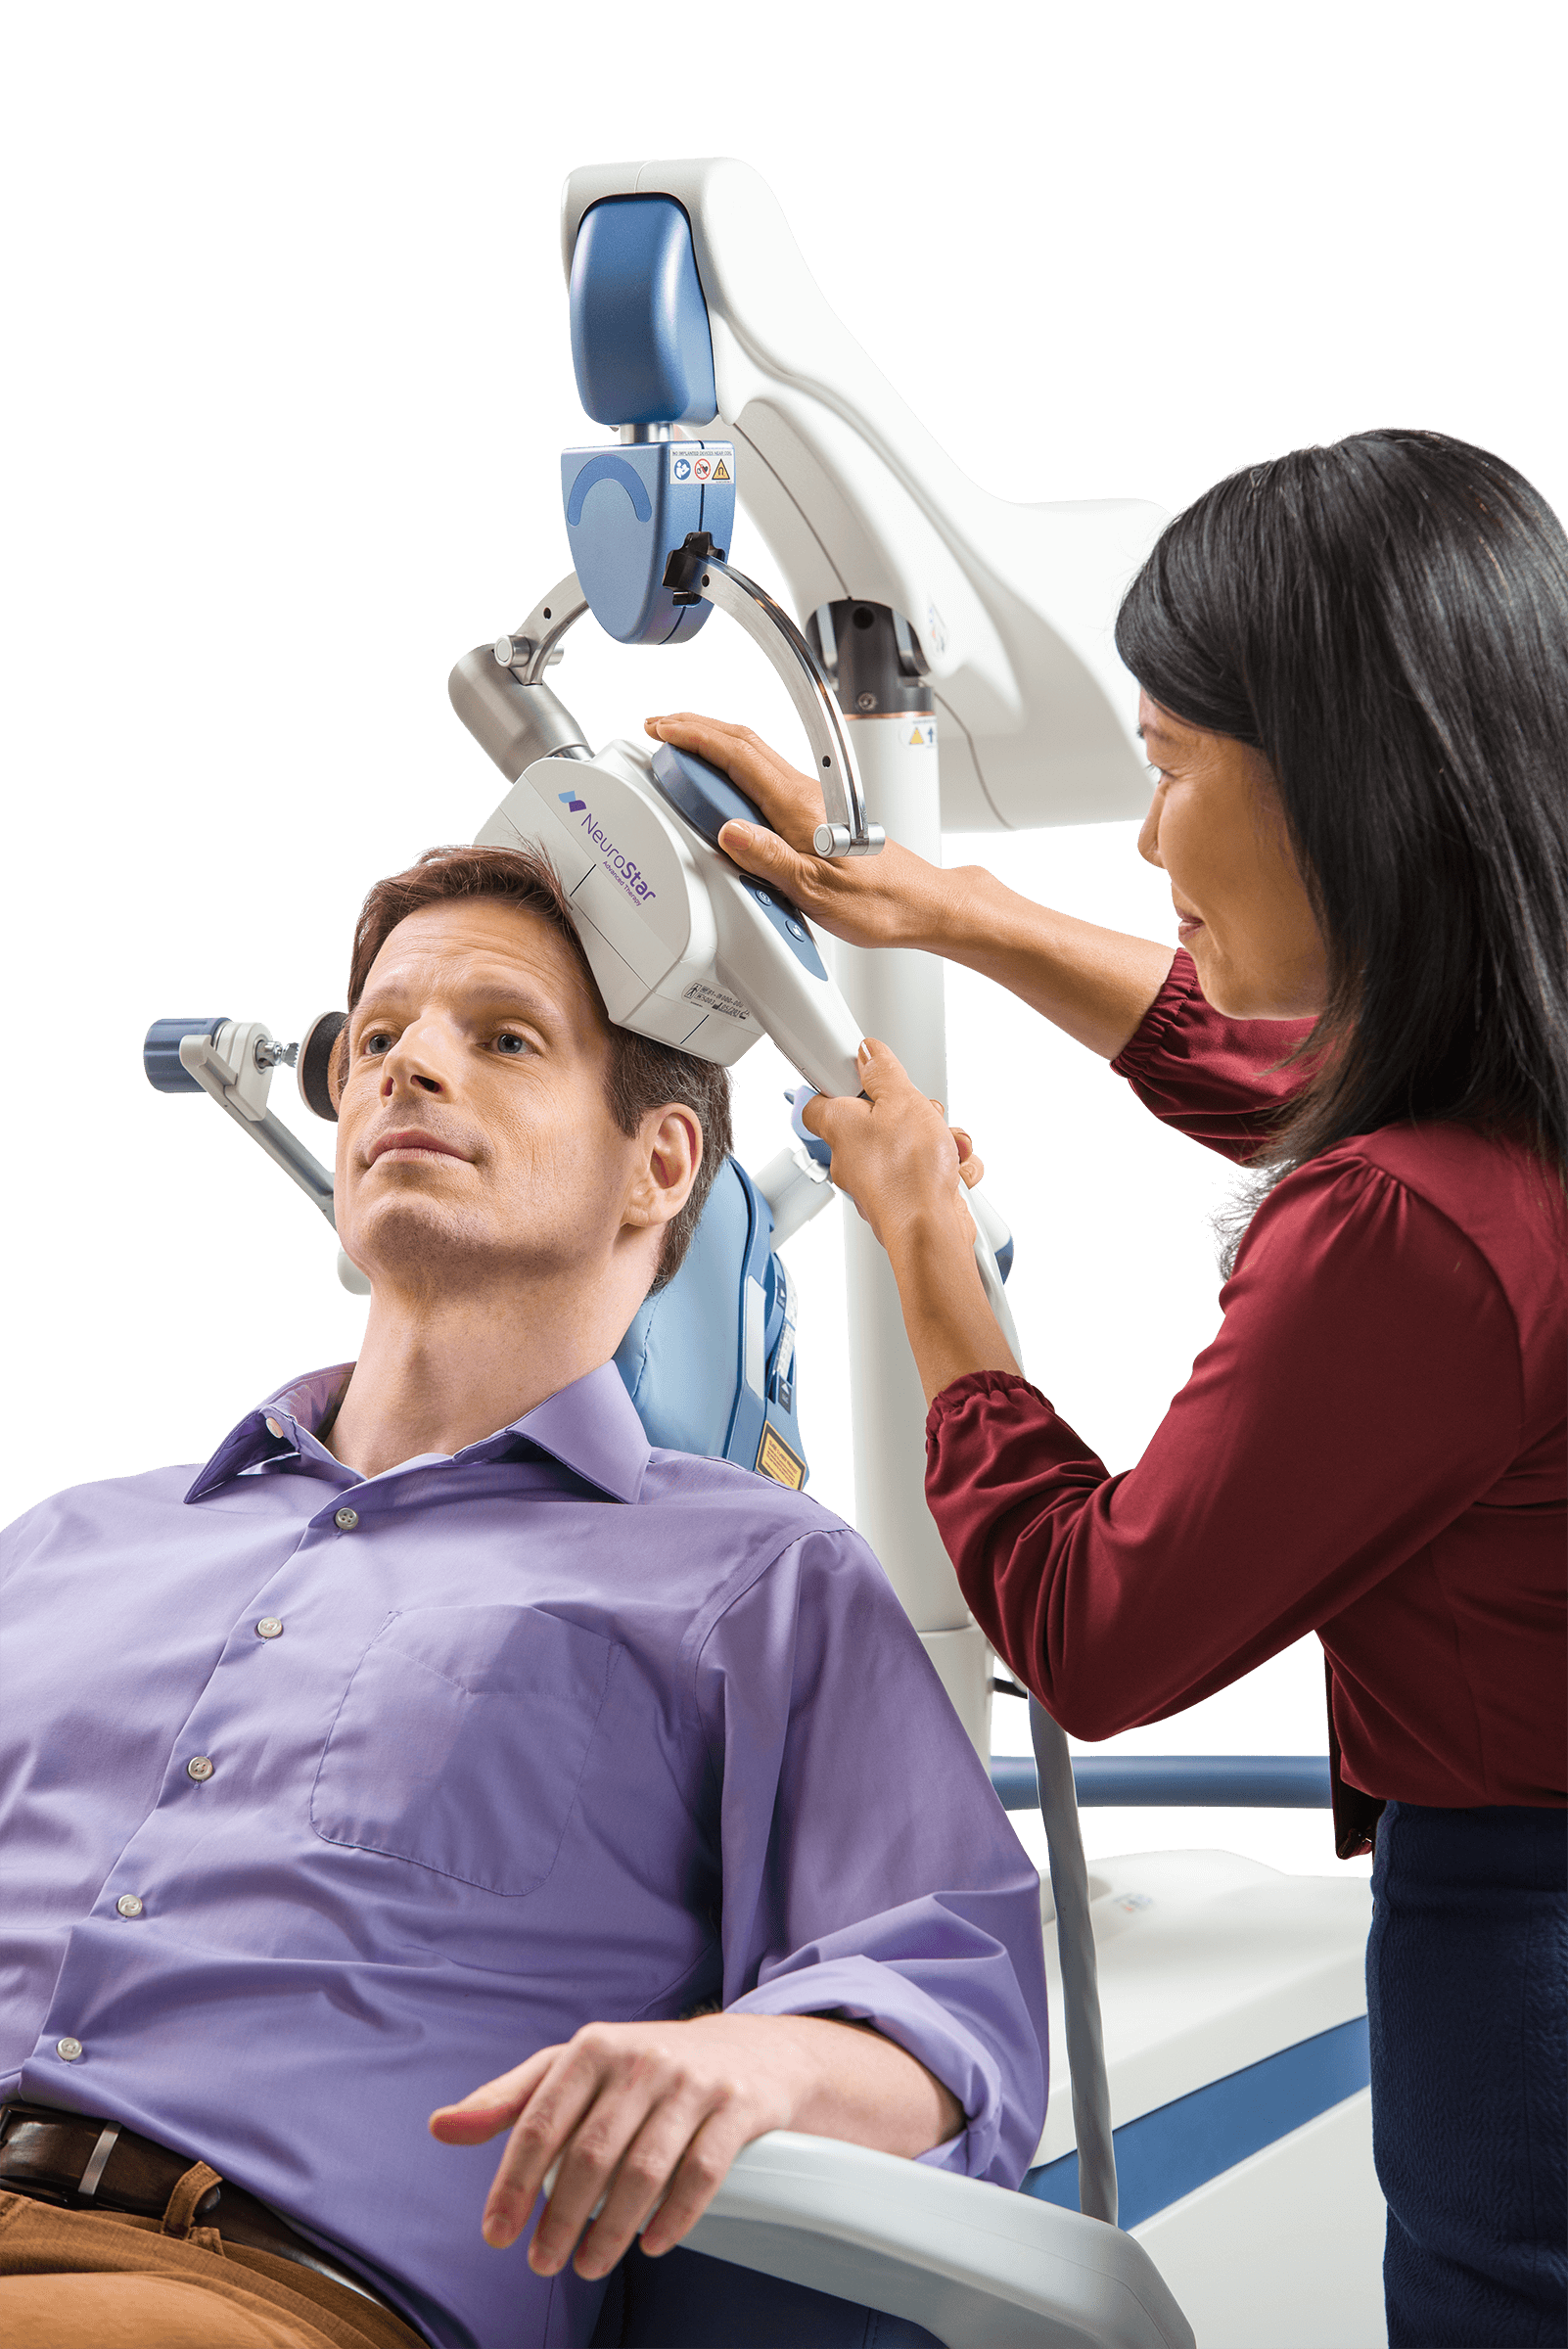 person receiving tms treatment for depression